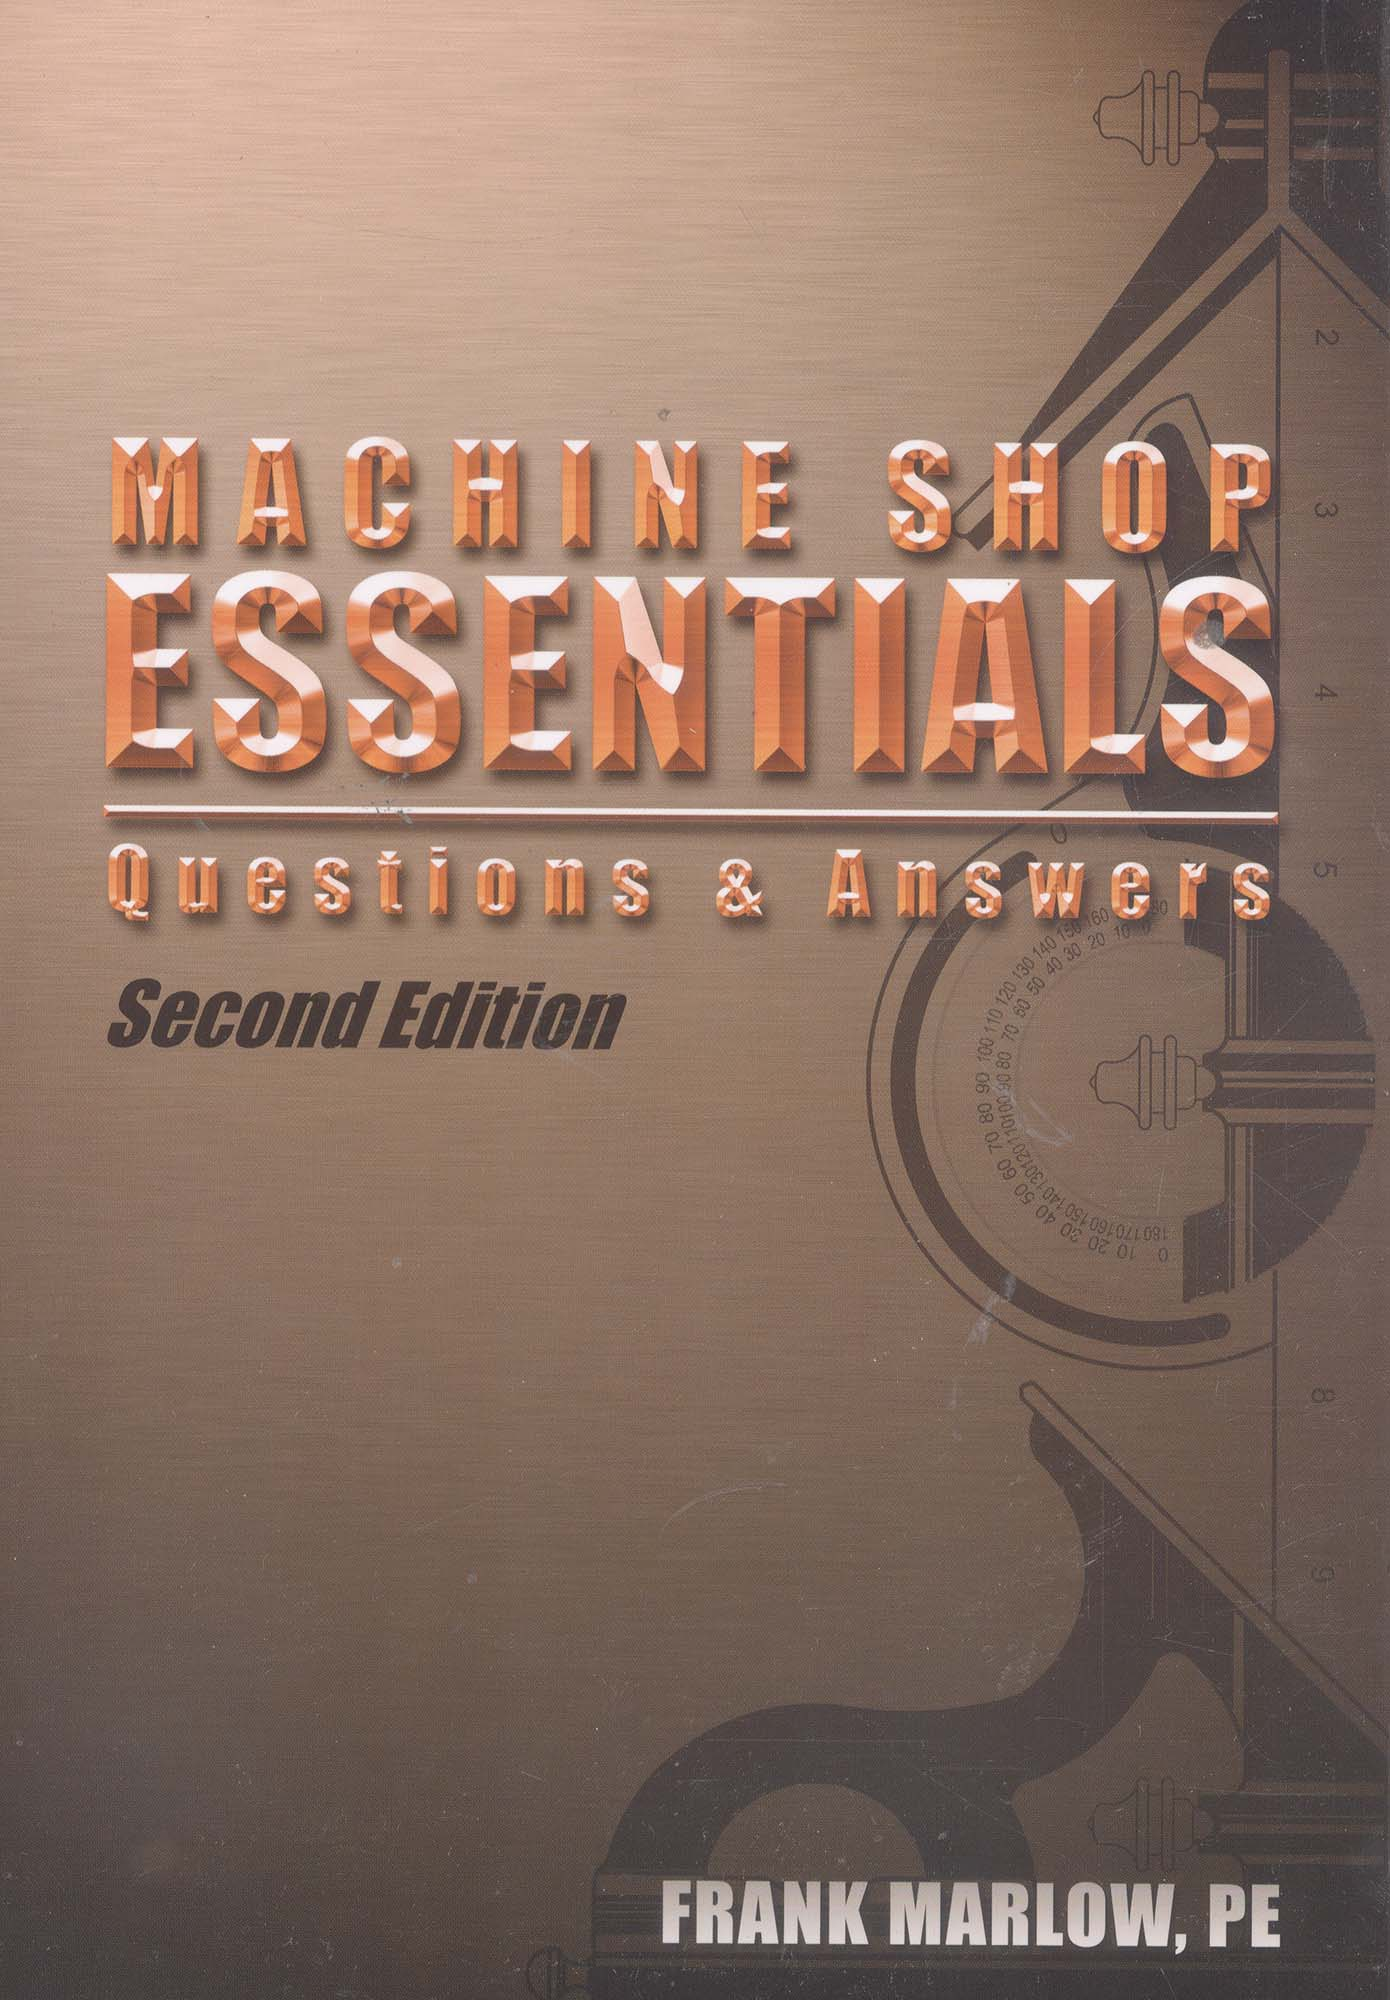 Book-Machine Shop Essentials - Frank Marlow